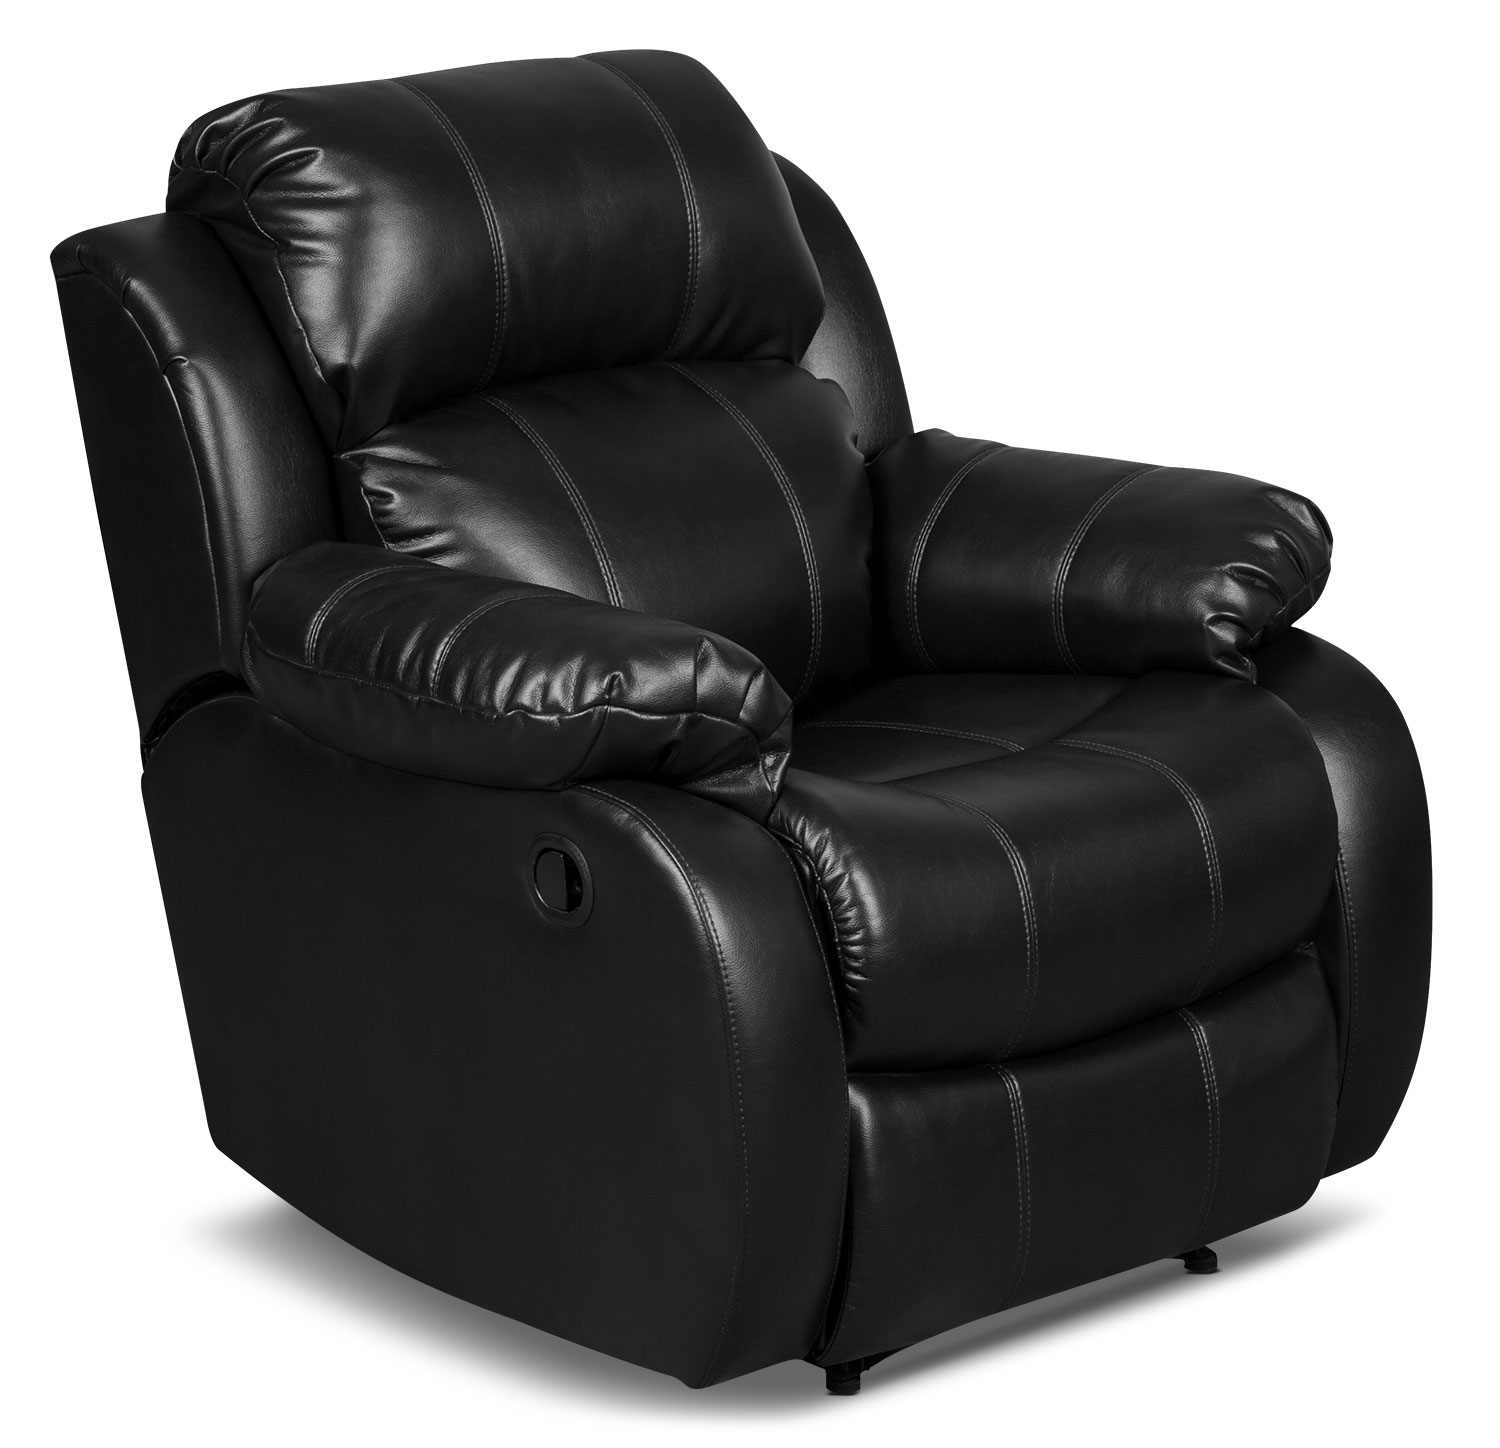 Omega 3 Leather-Look Fabric Reclining Chair – Black